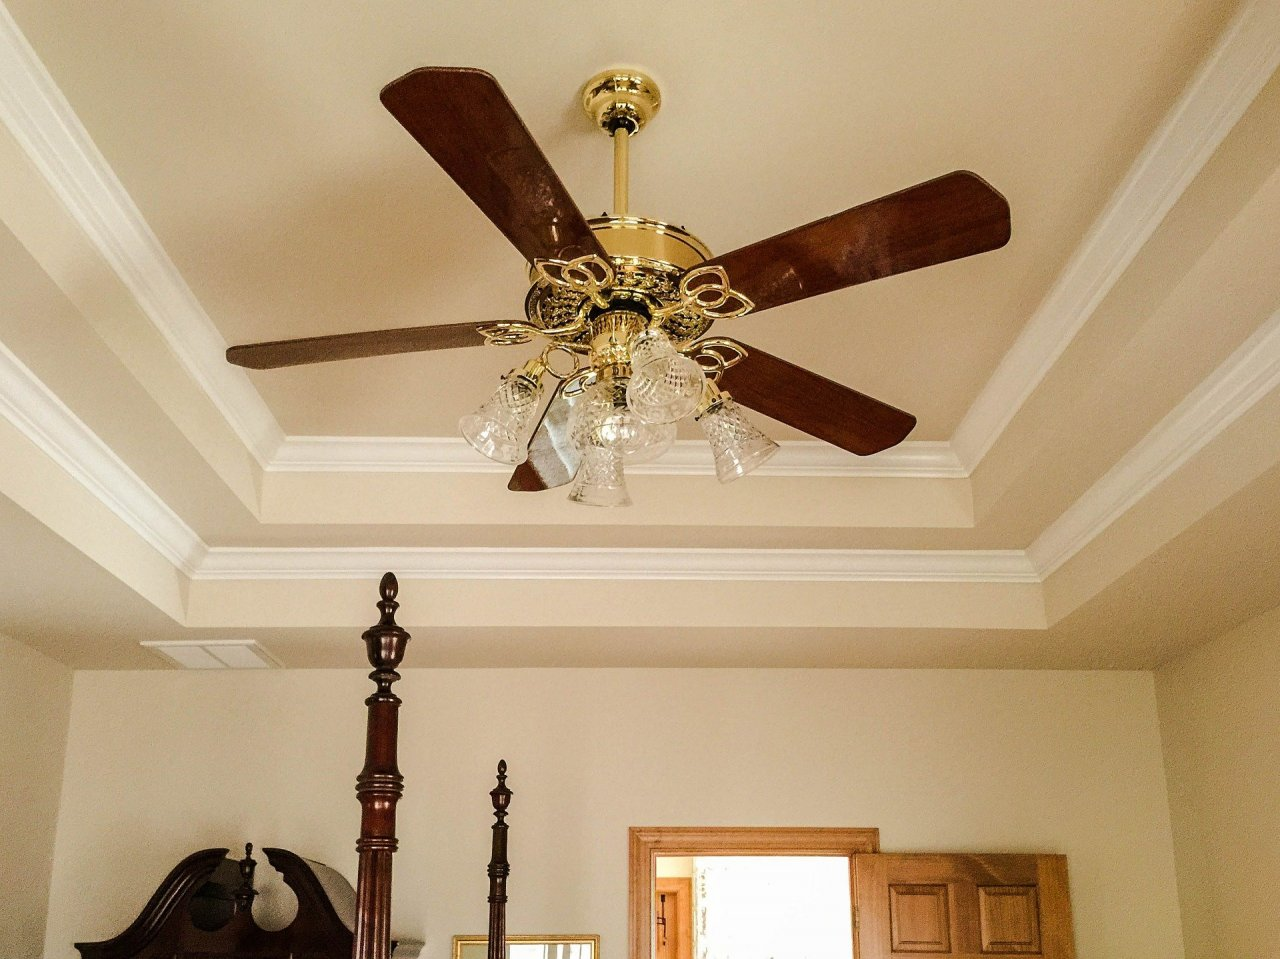 How To Add A Dimmer And Fan Speed Switch To A Ceiling Fan With Lights Diy Forums